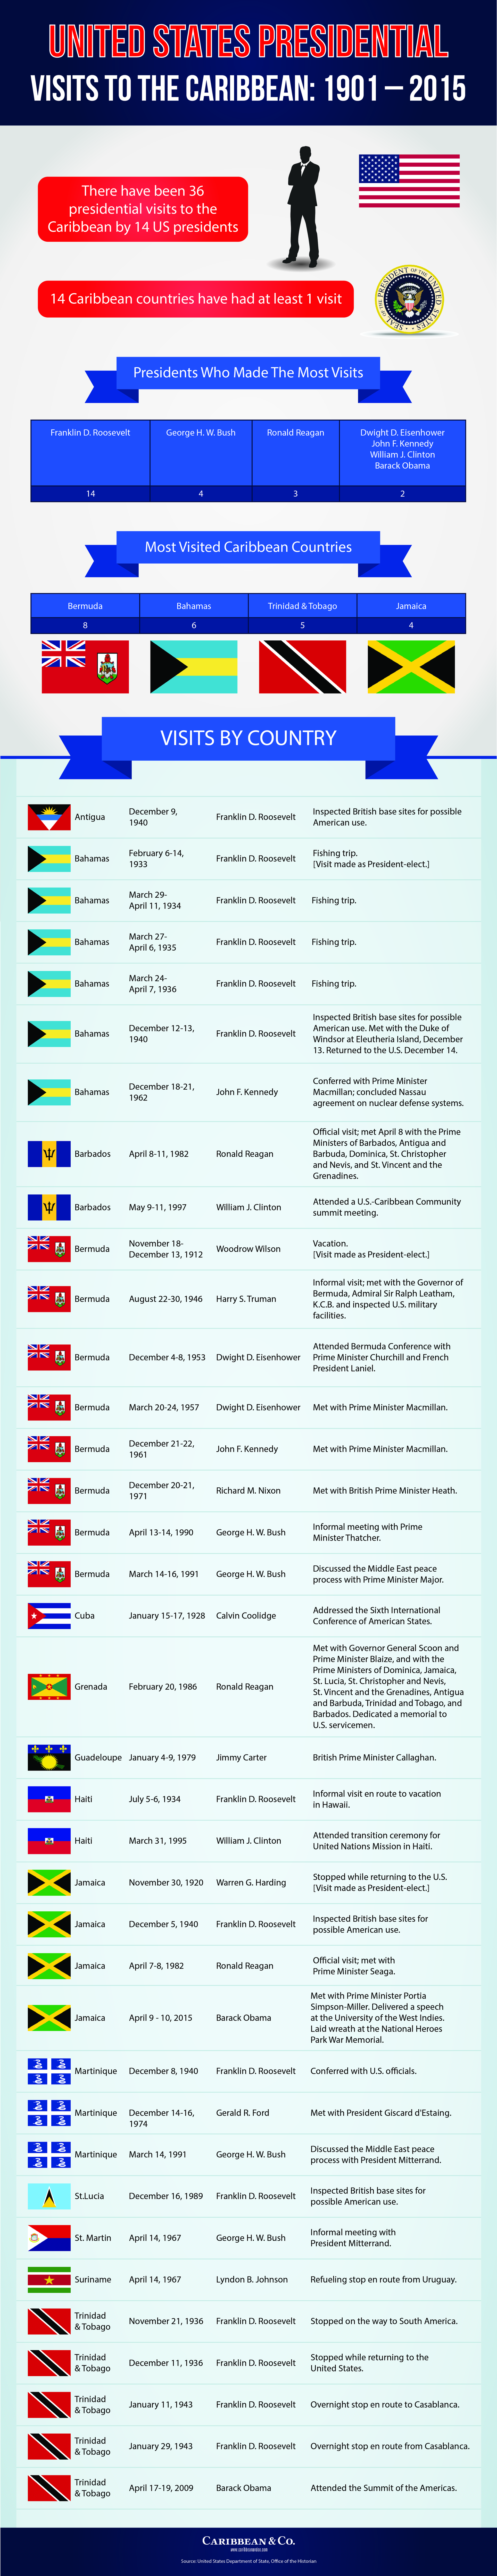 United States Presidential Visits To The Caribbean